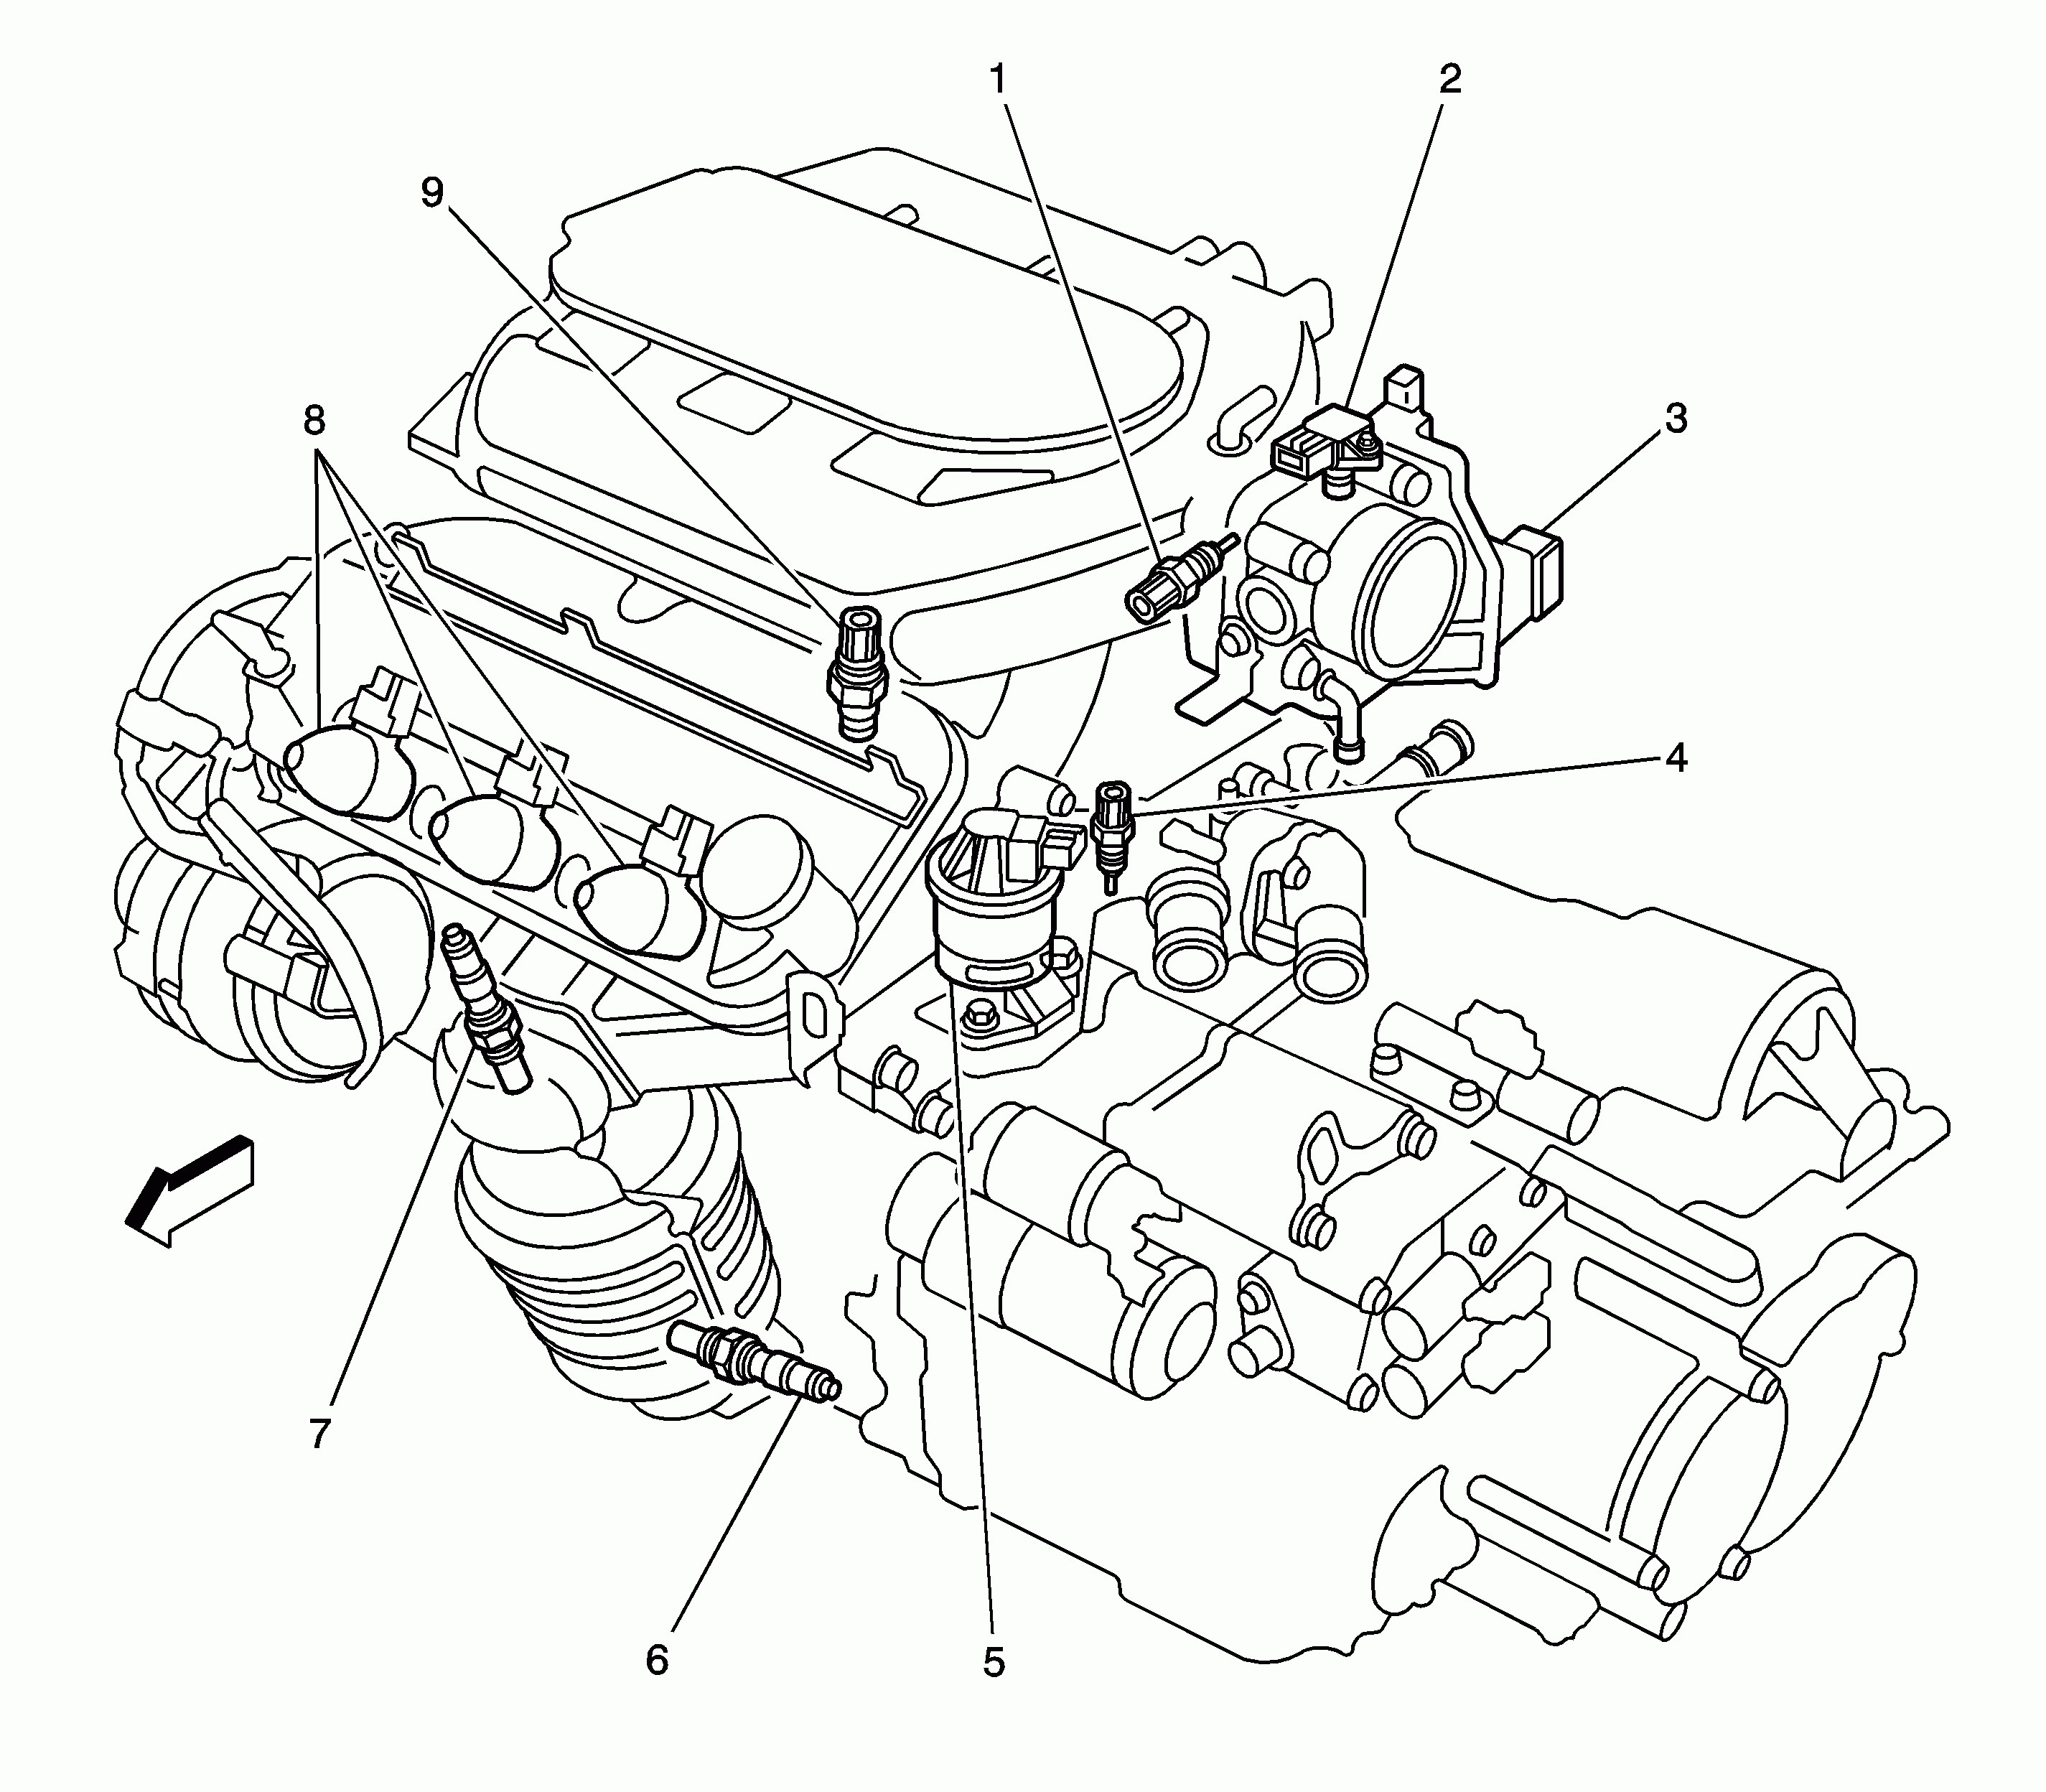 2001 Chevy Astro Engine Diagram